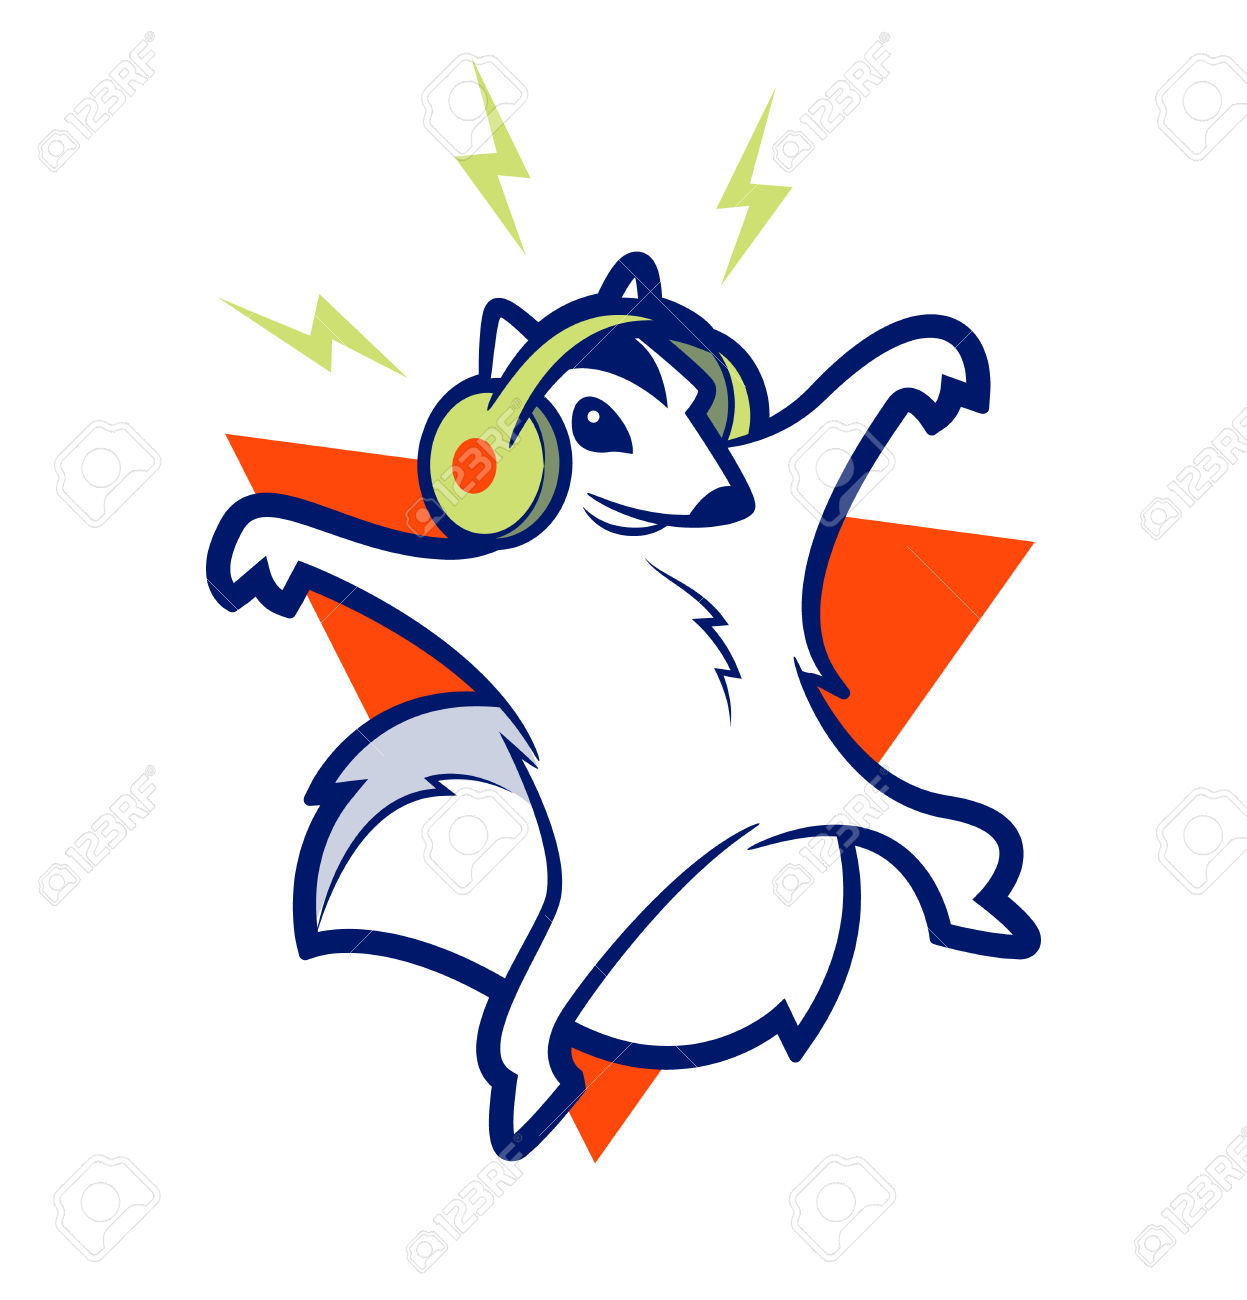 Flying Squirrel clipart #2, Download drawings